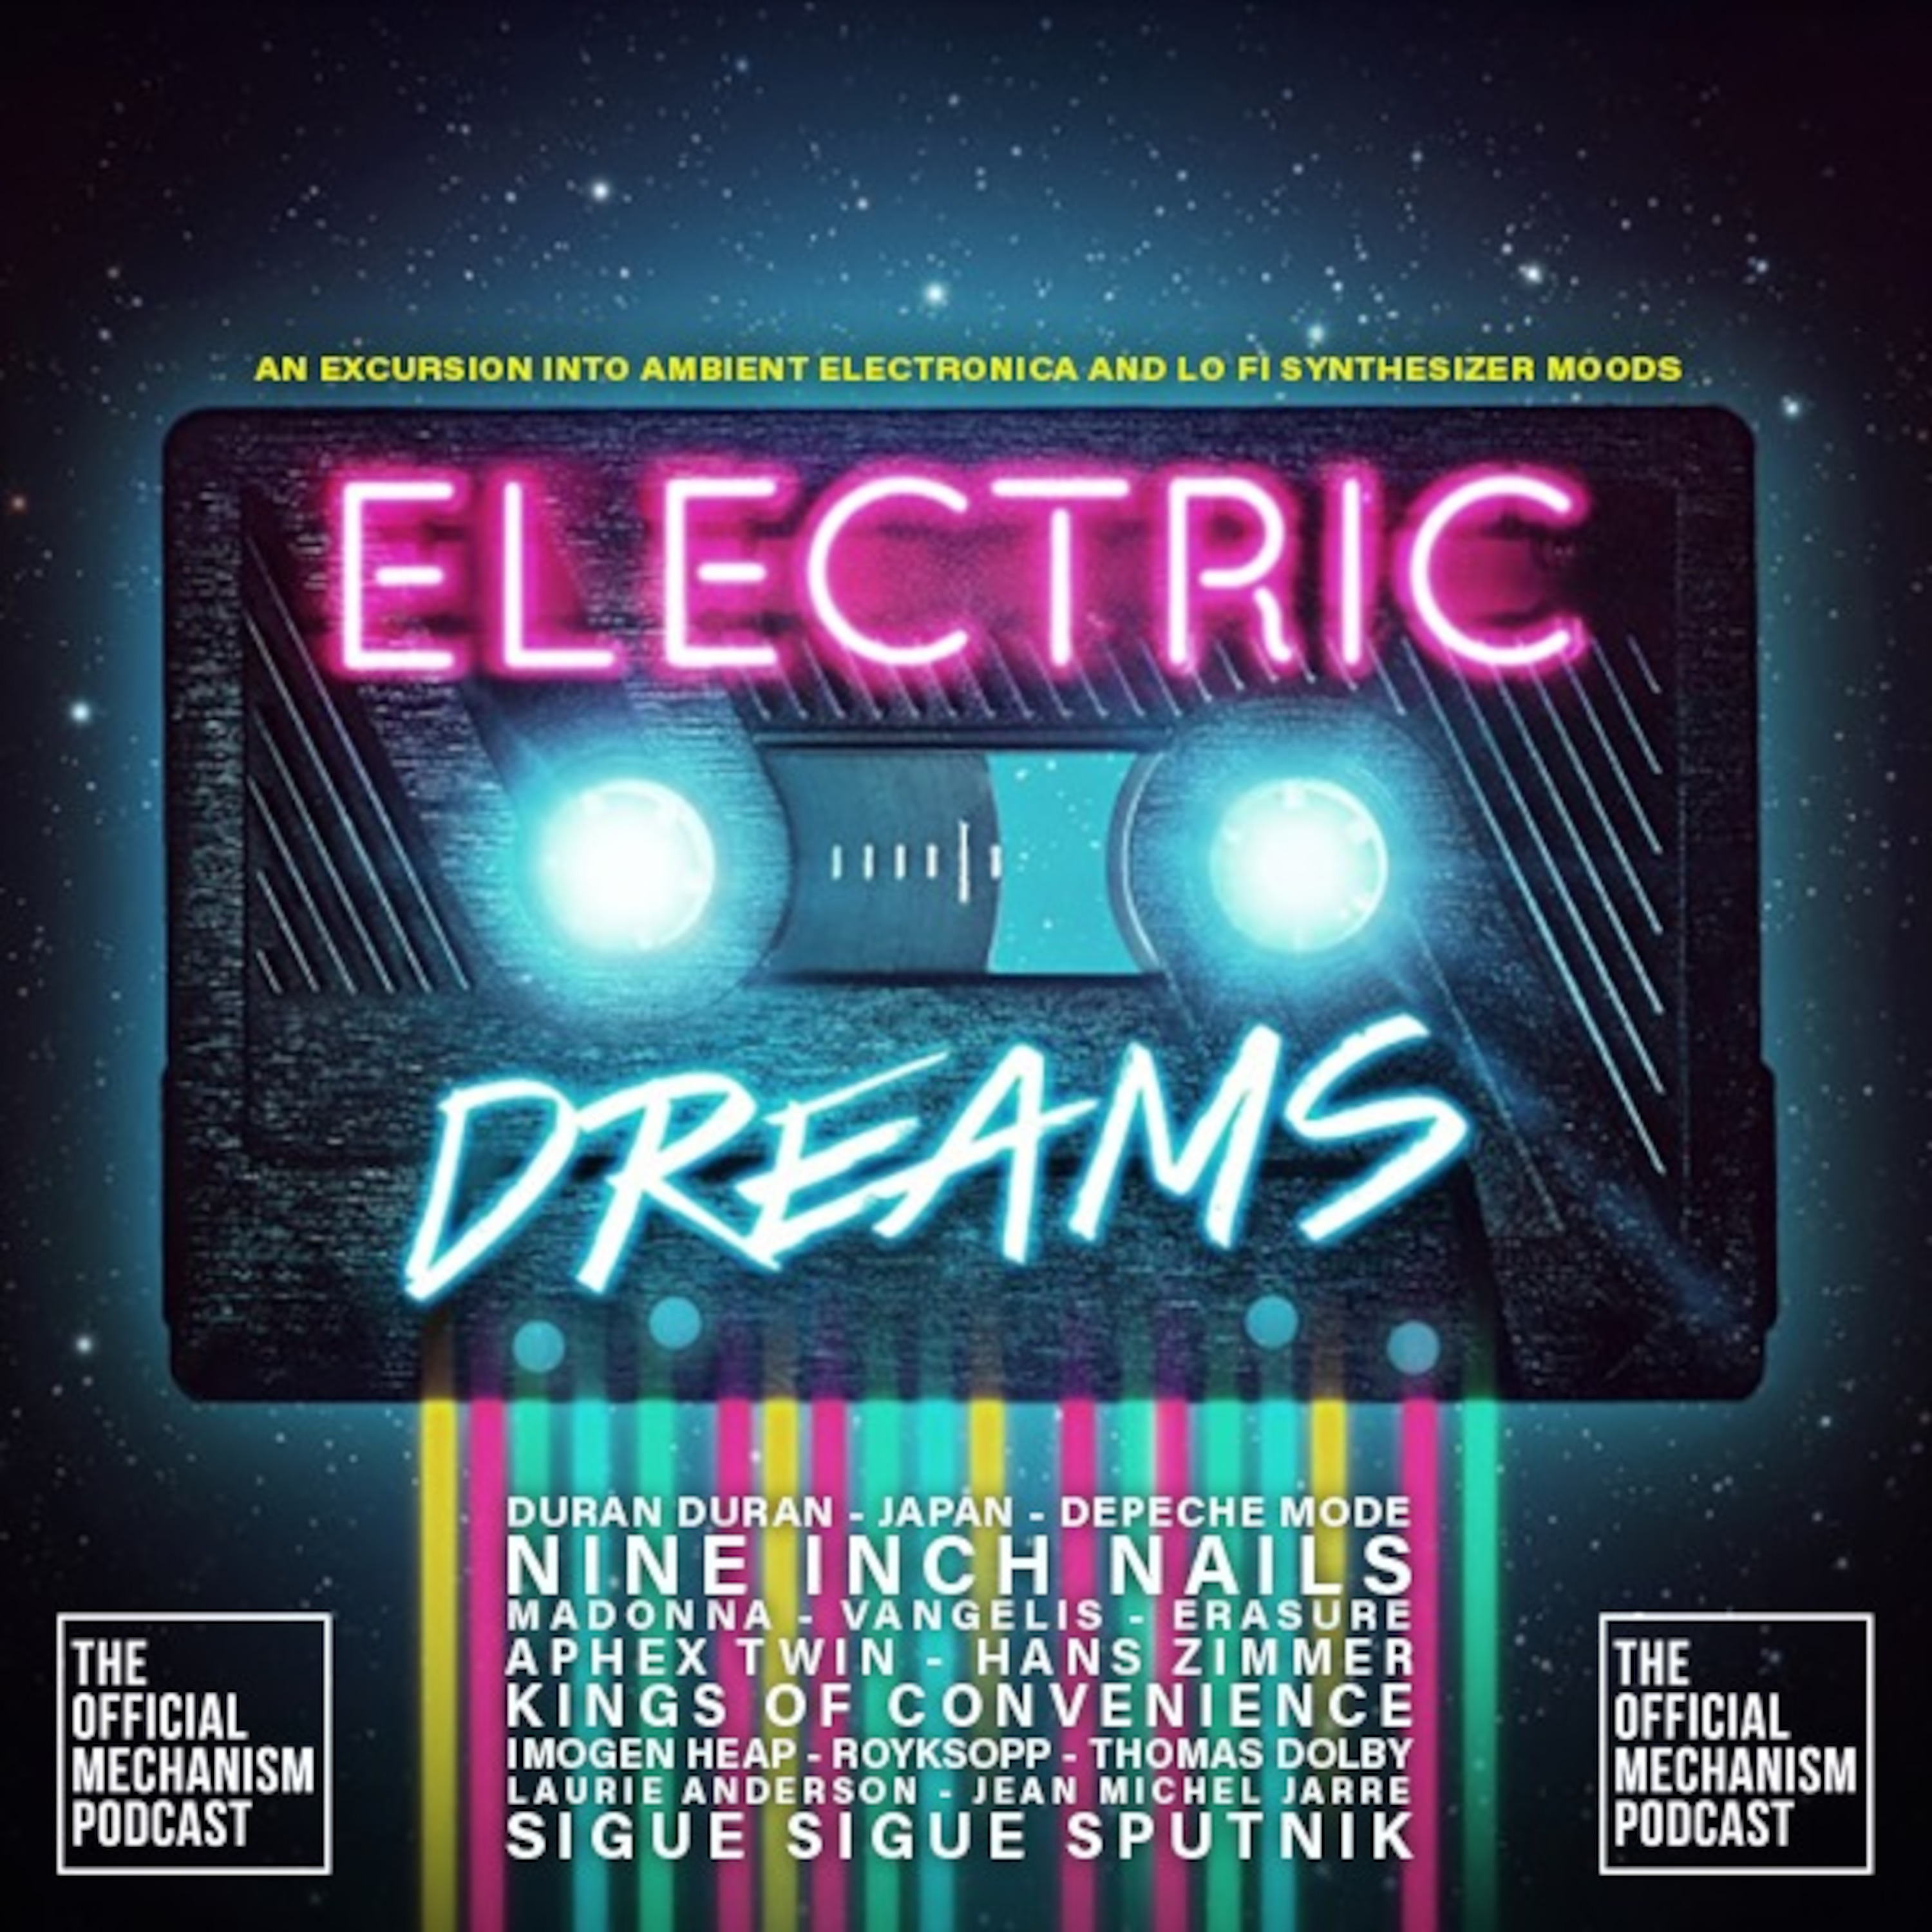 894 Electric Dreams The Official Mechanism Podcast